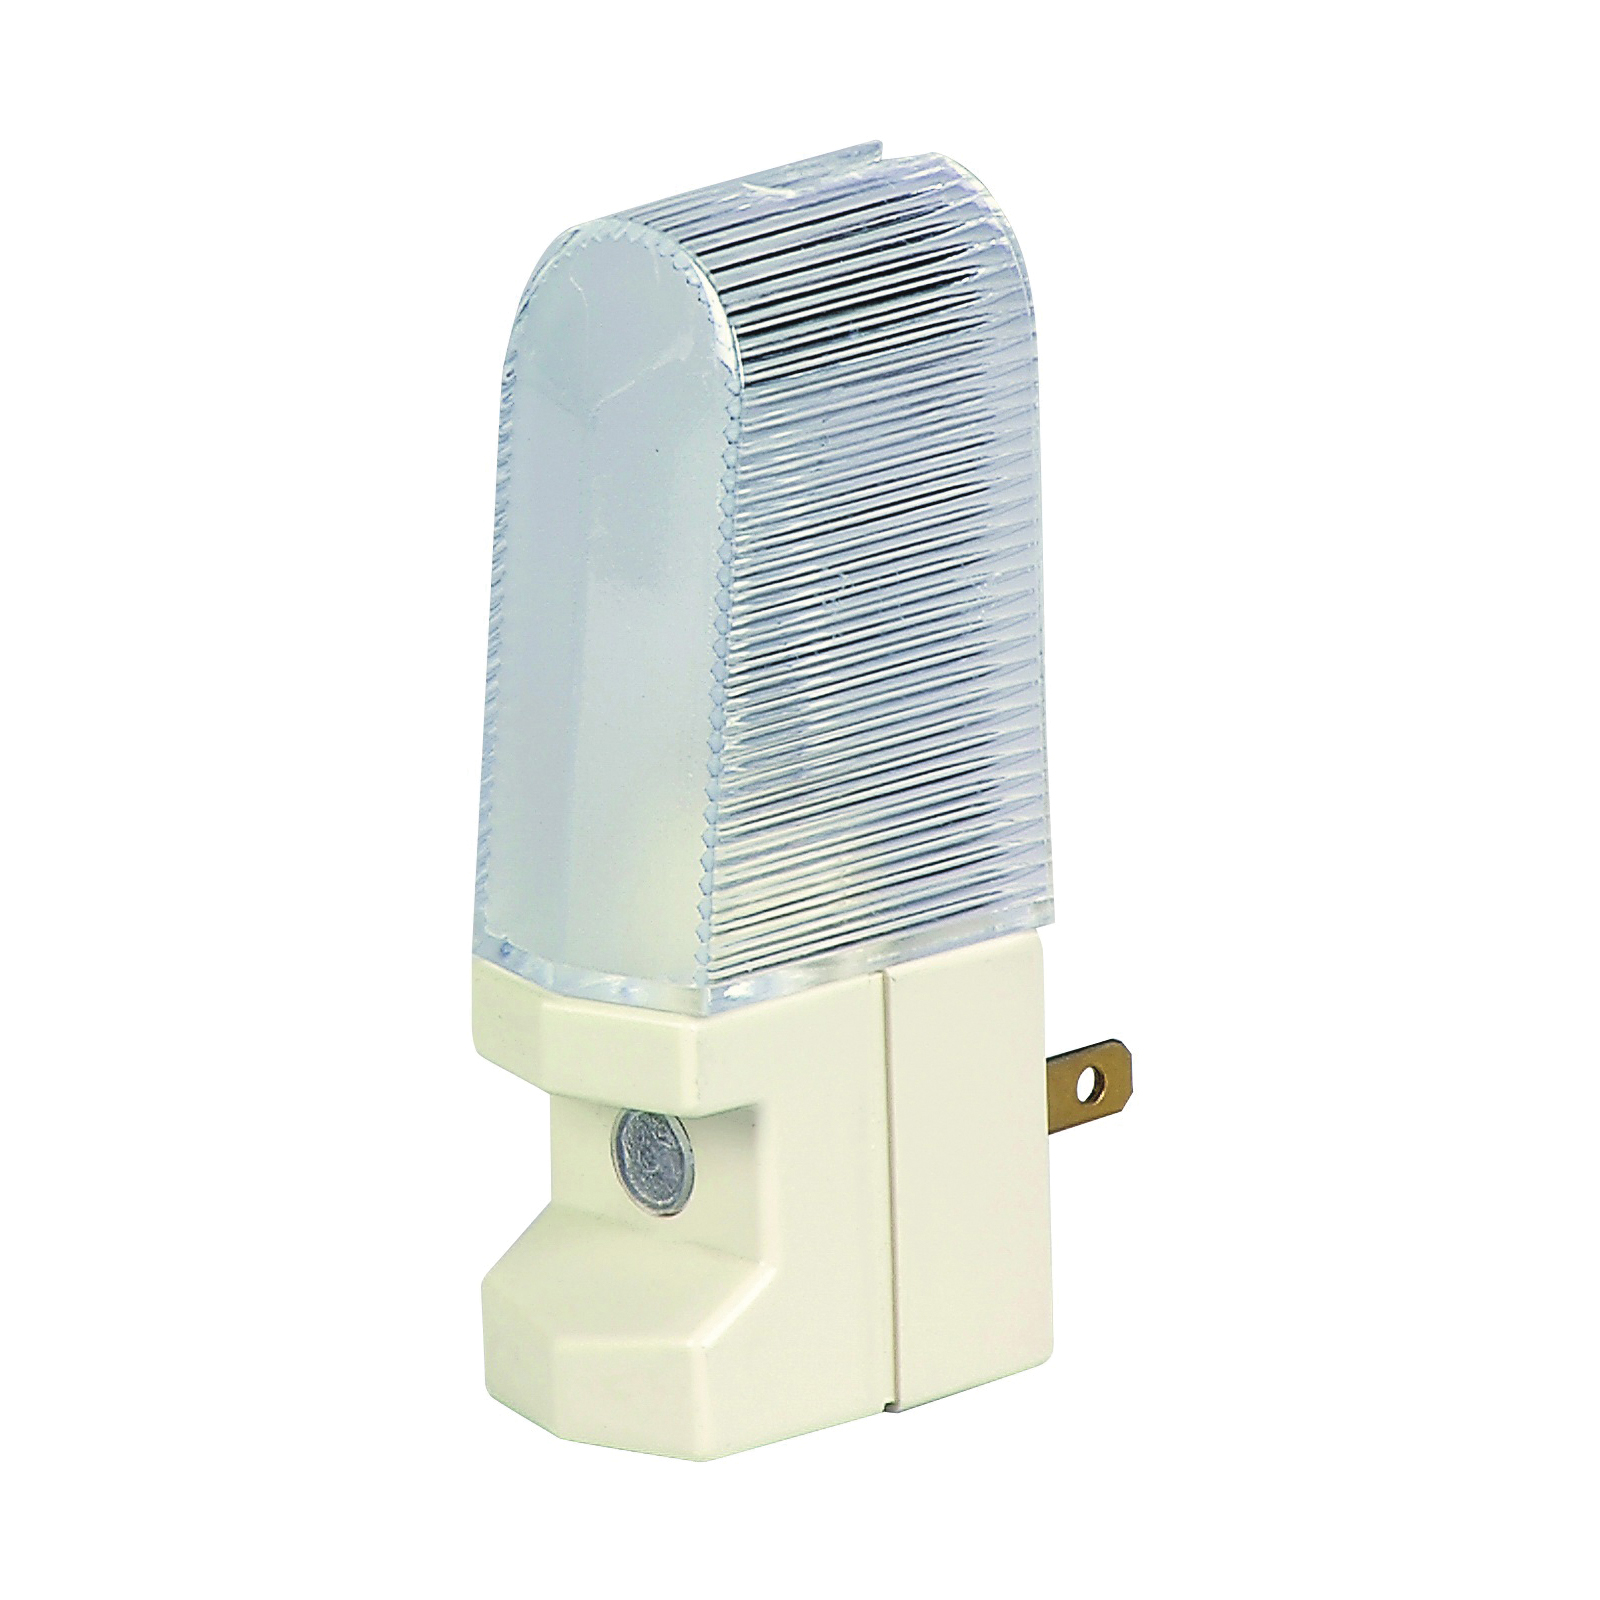 Picture of Eaton Wiring Devices BP851W Nightlight, 15 A, 125 V, 4 W, Incandescent Lamp, White Light